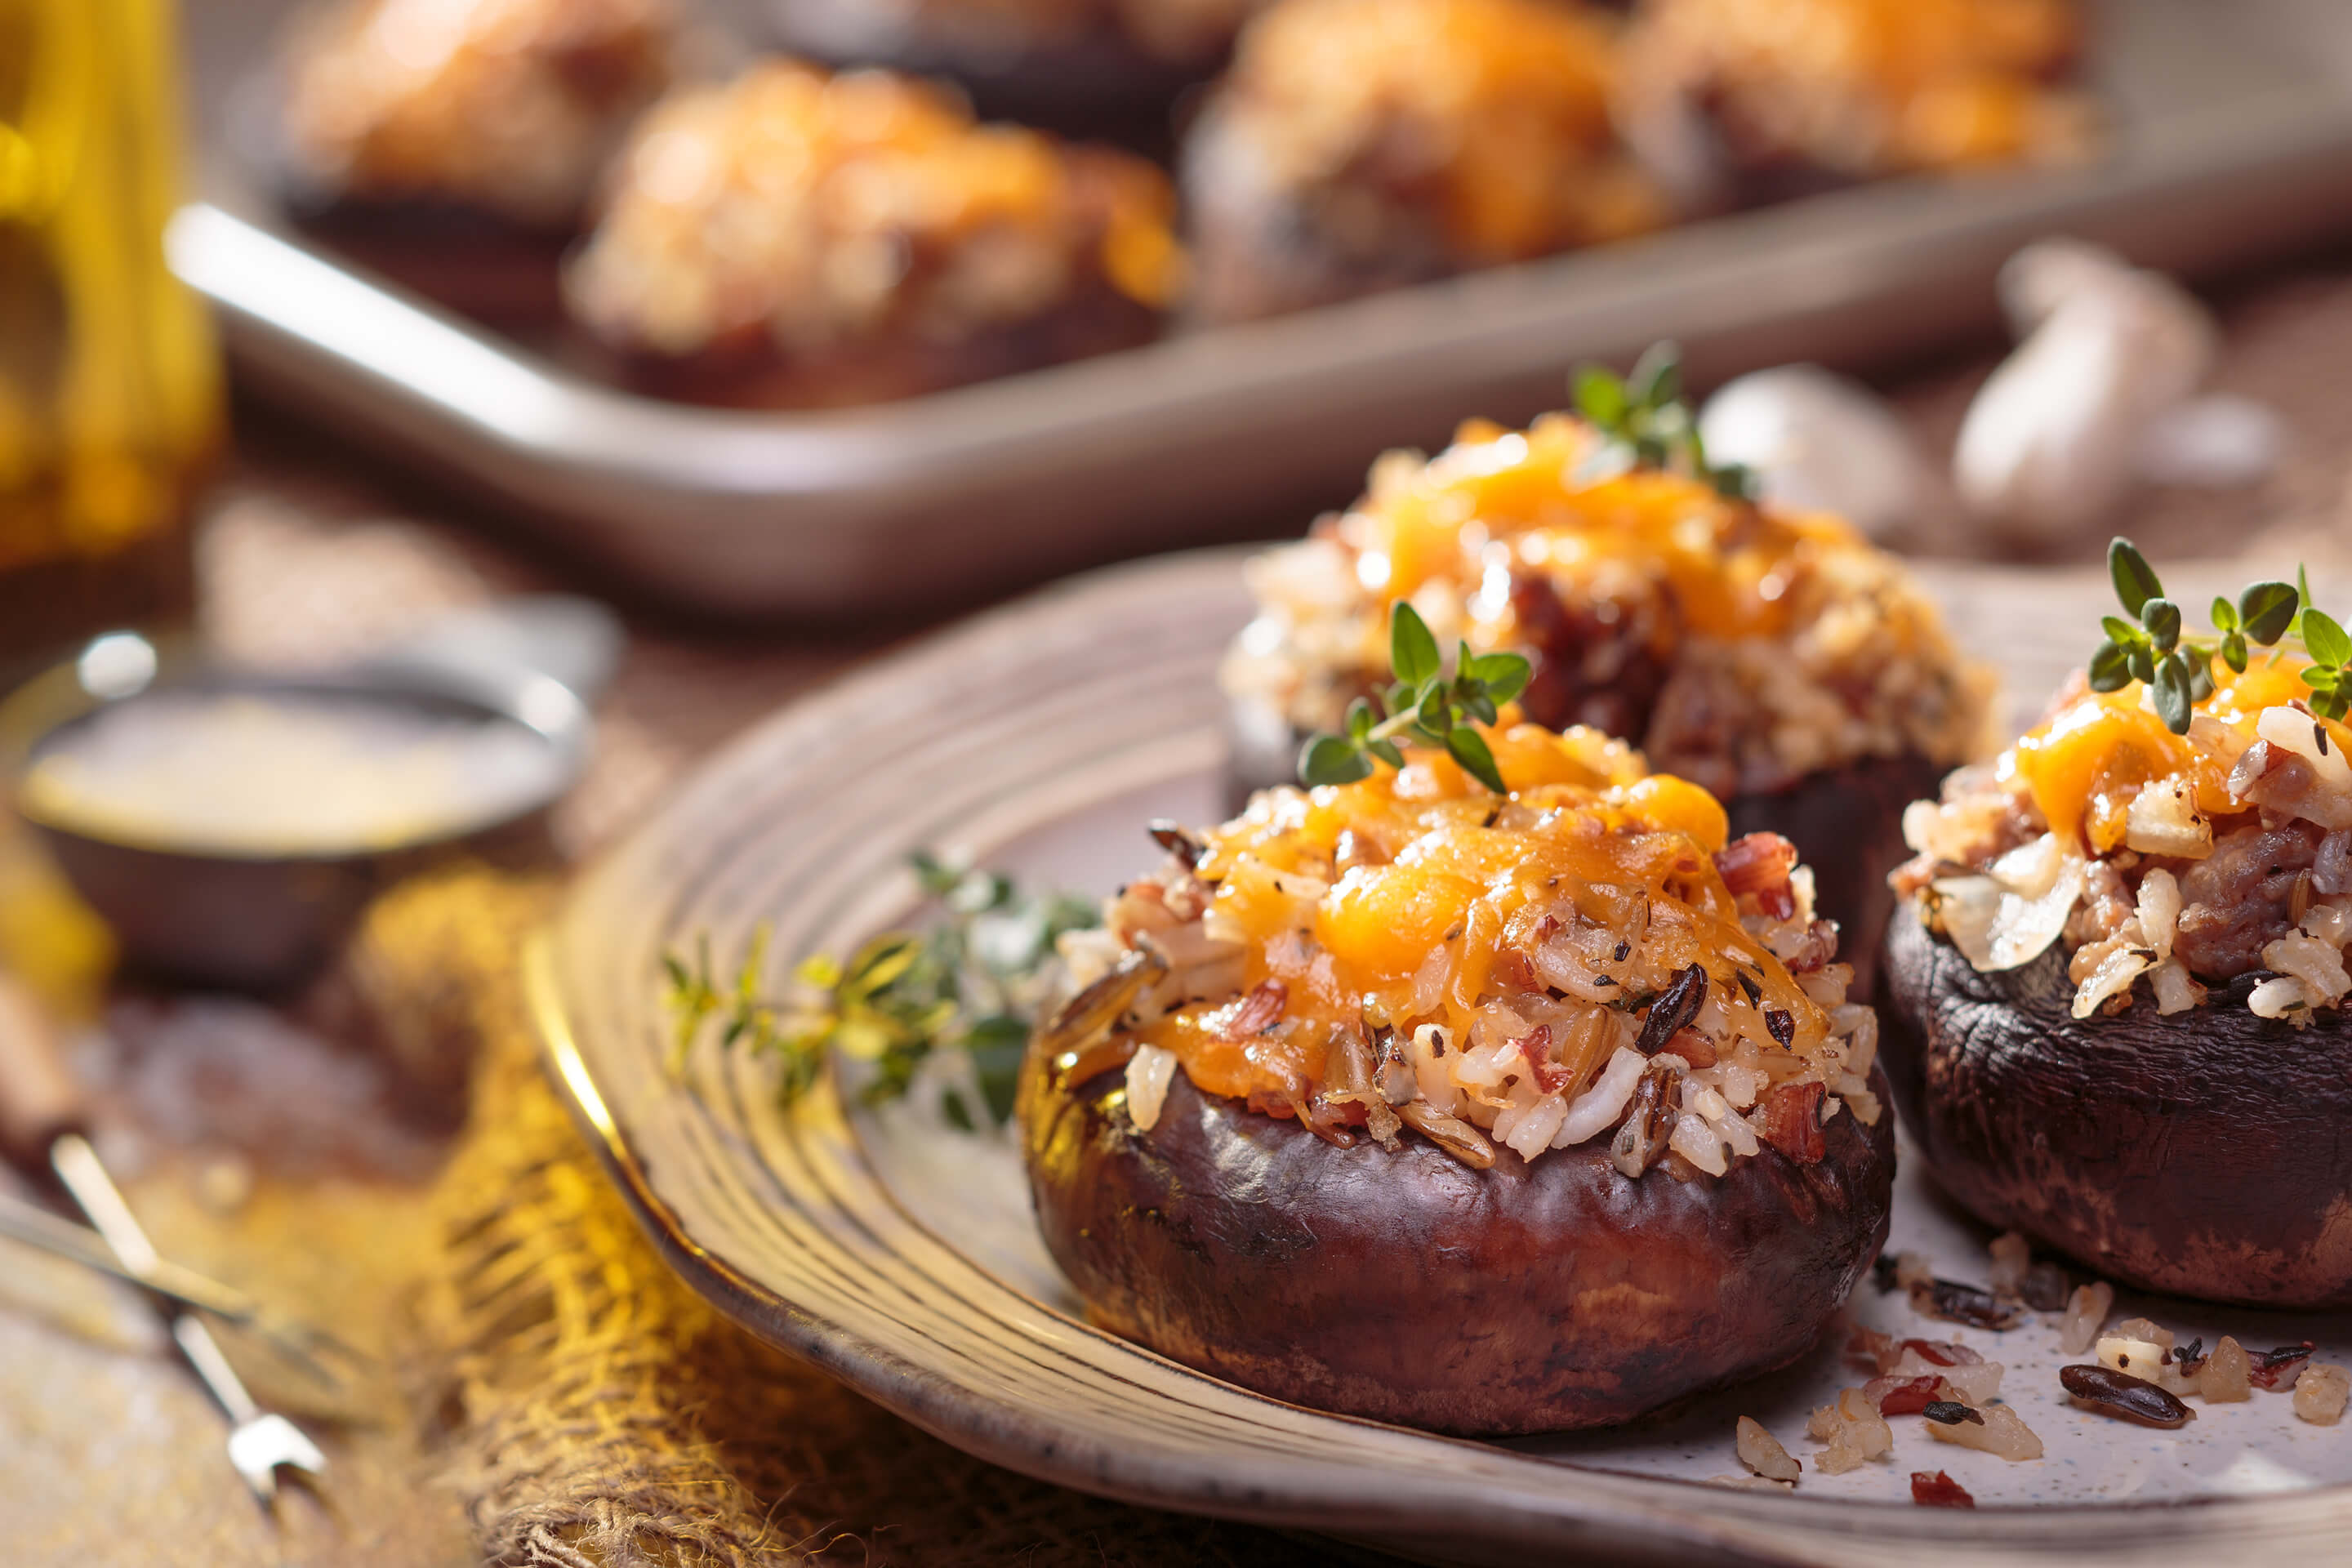 Wild Rice & Sausage-Stuffed Mushrooms